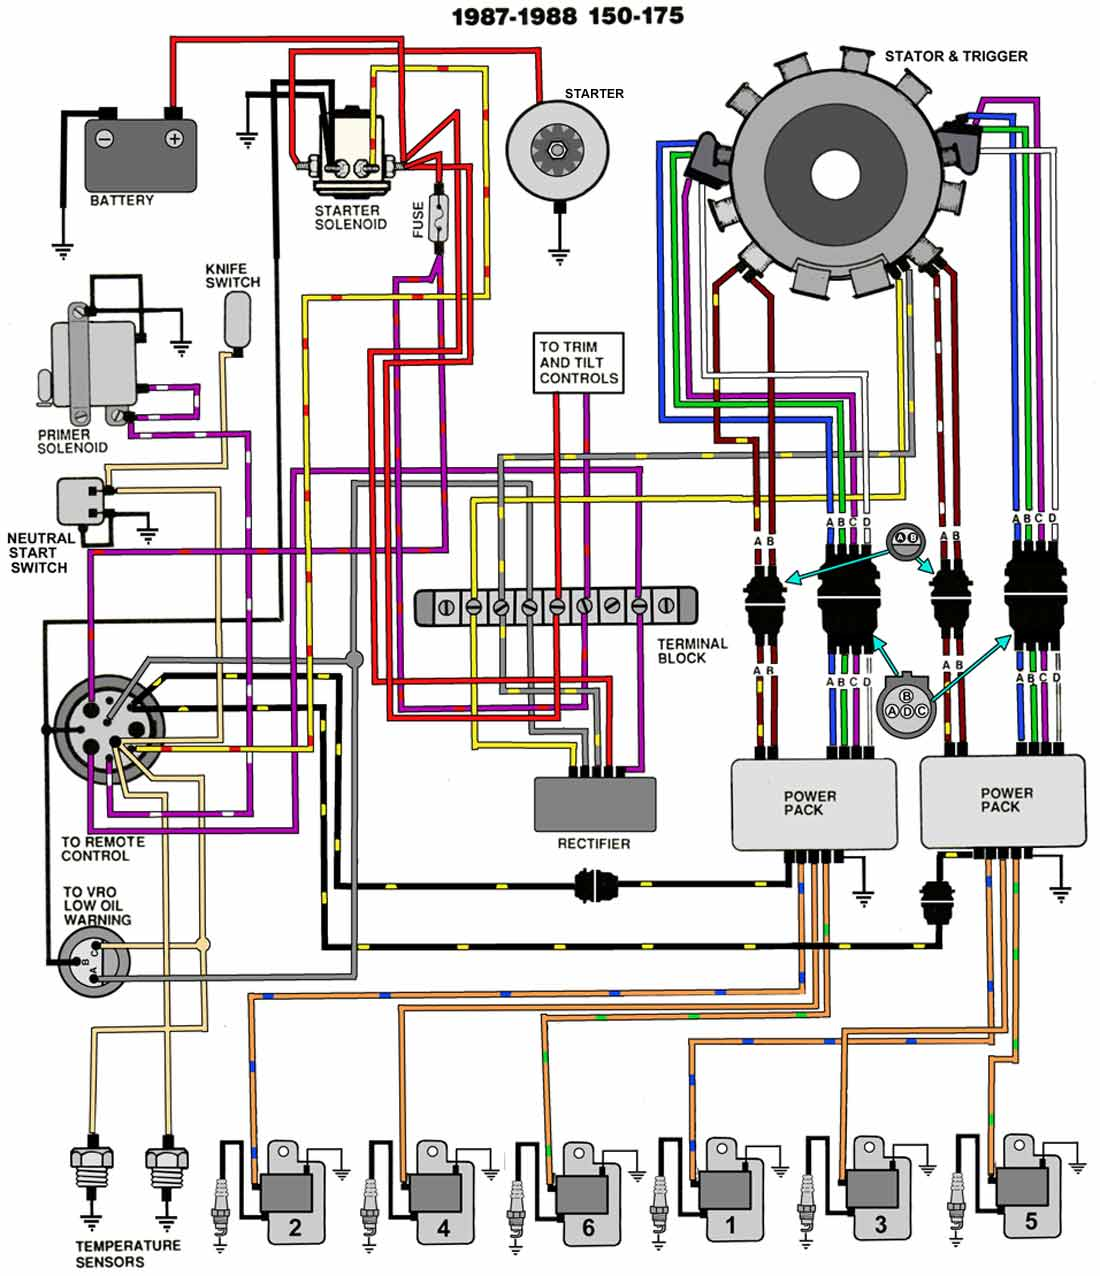 75 hp johnson outboard wiring diagram 70 hp johnson outboard wiring diagram evinrude johnson outboard wiring diagrams -- mastertech ... #15